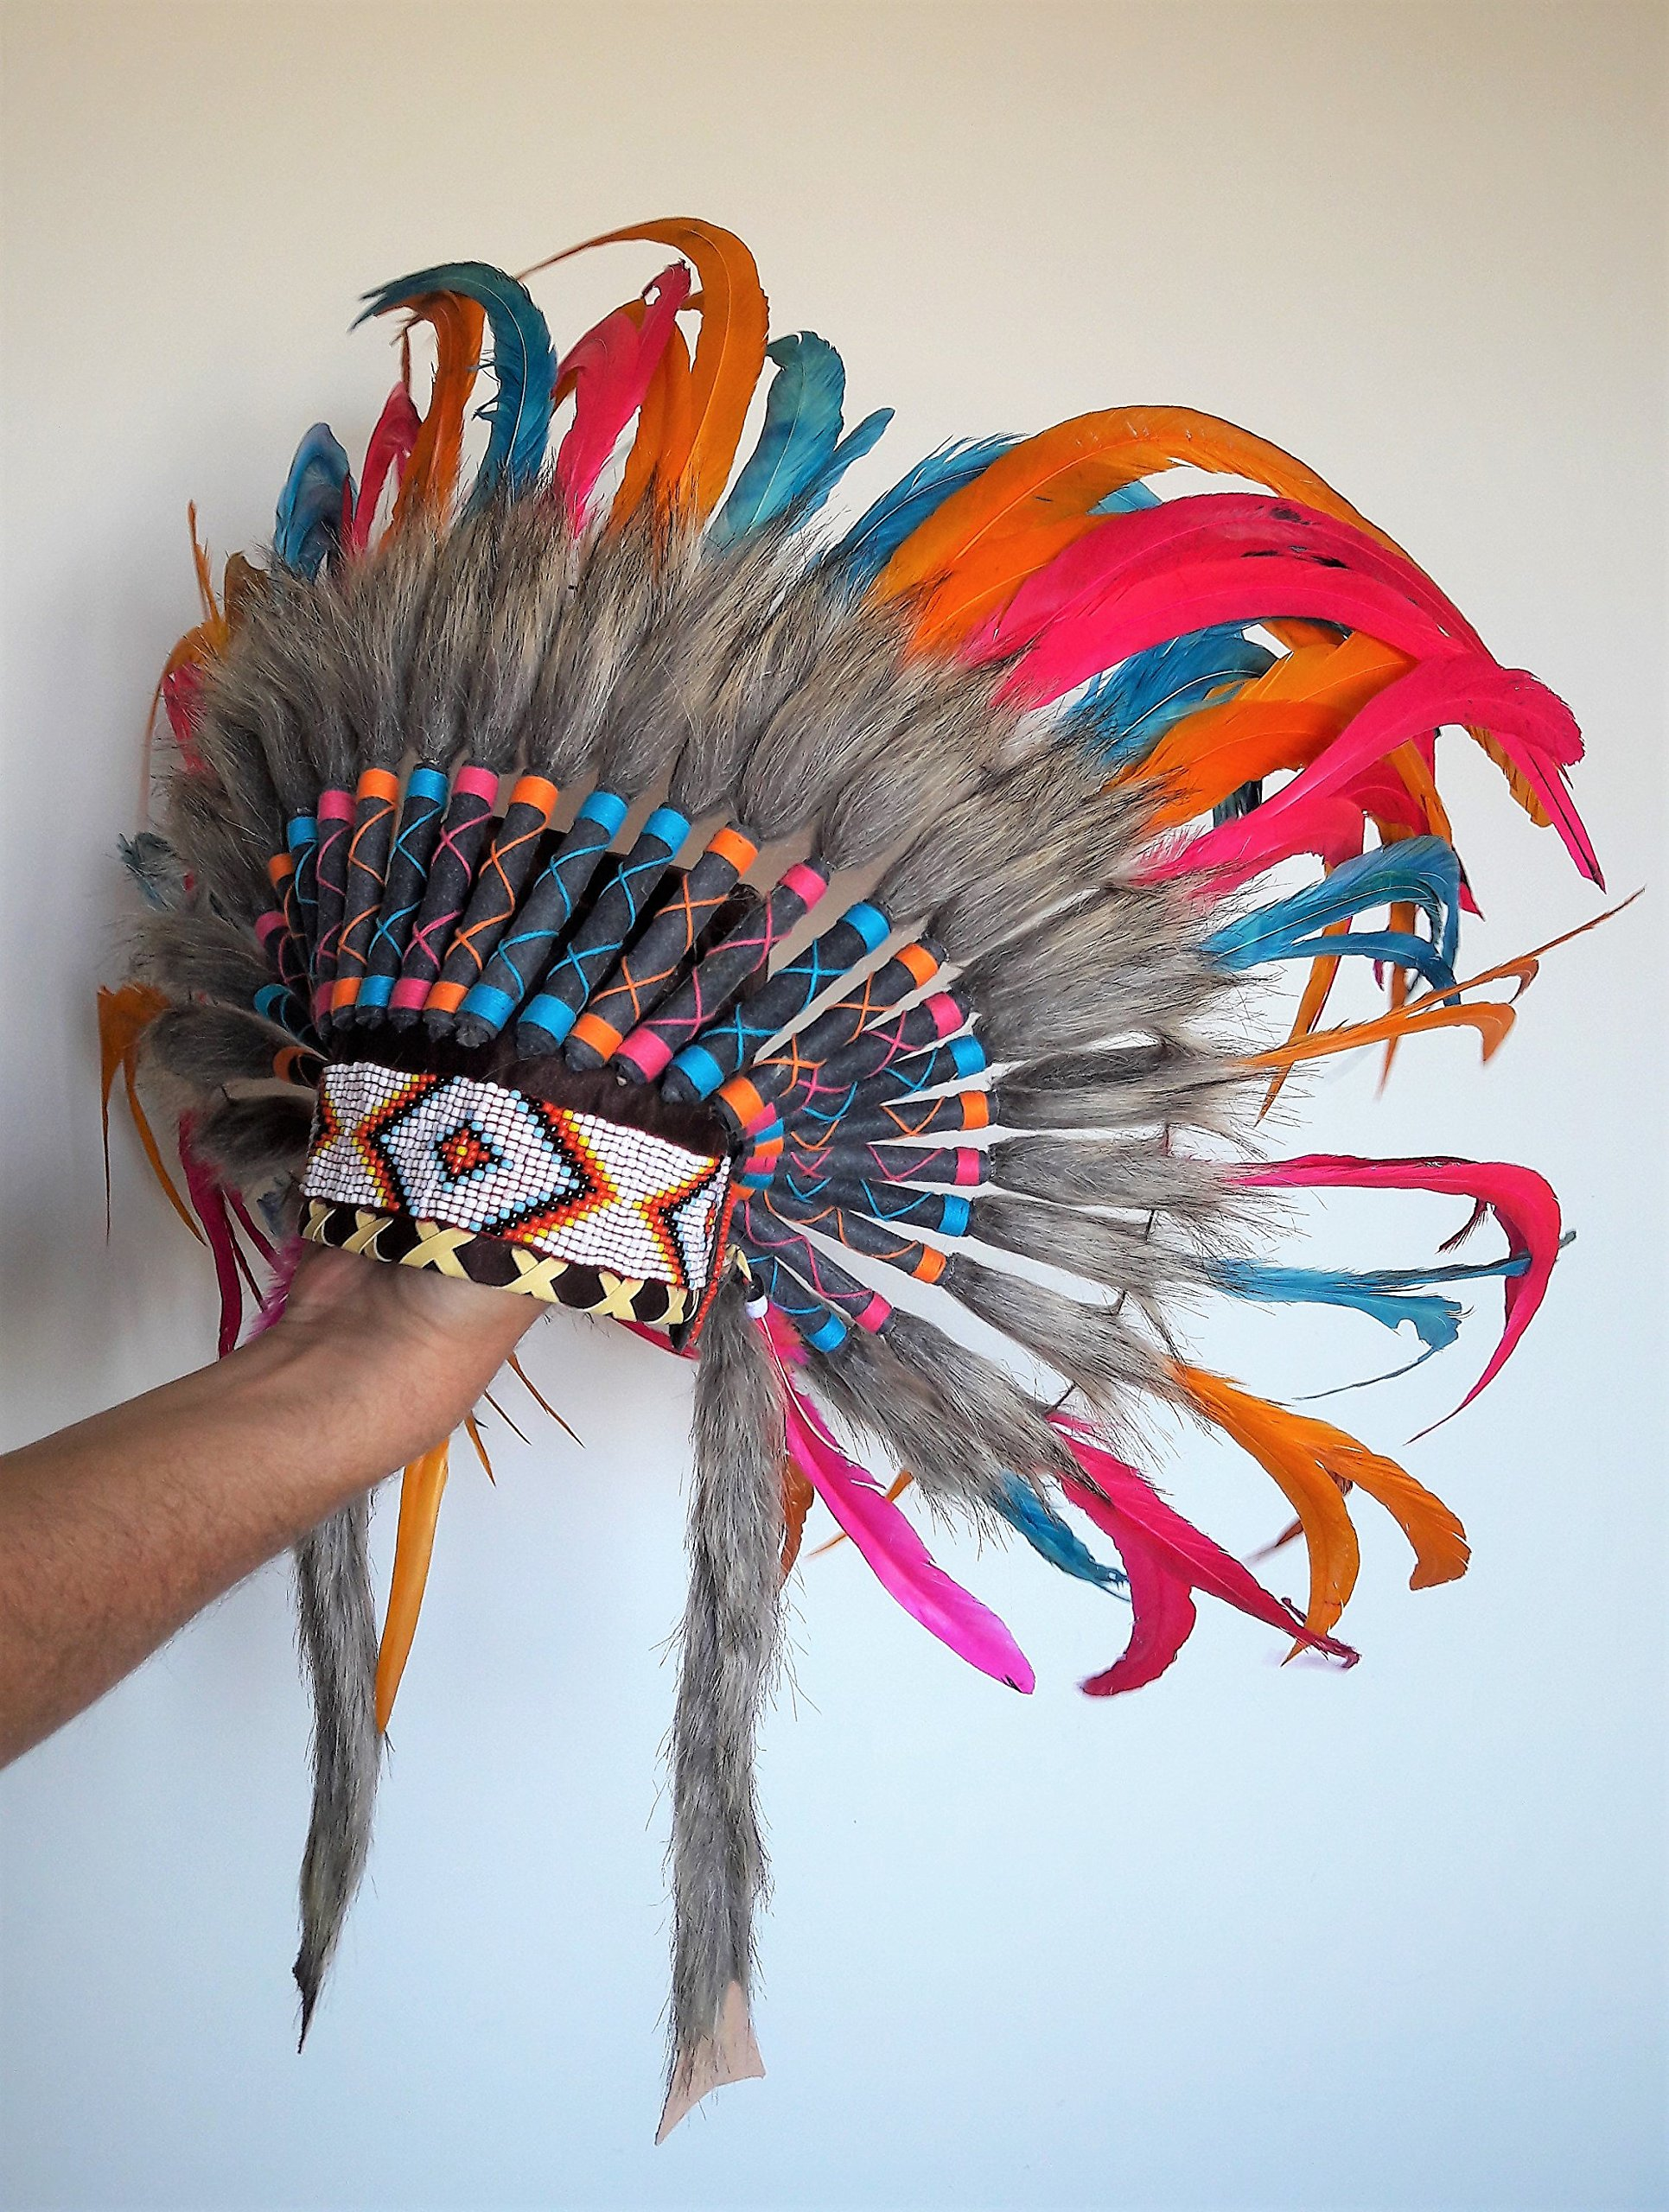 N25 - For 9 To 18 Month Toddler/Baby: Pink, Orange and Turquoise Native American Style Indian Inspired Headdress For The Little Ones ! by KARMABCN (Image #3)